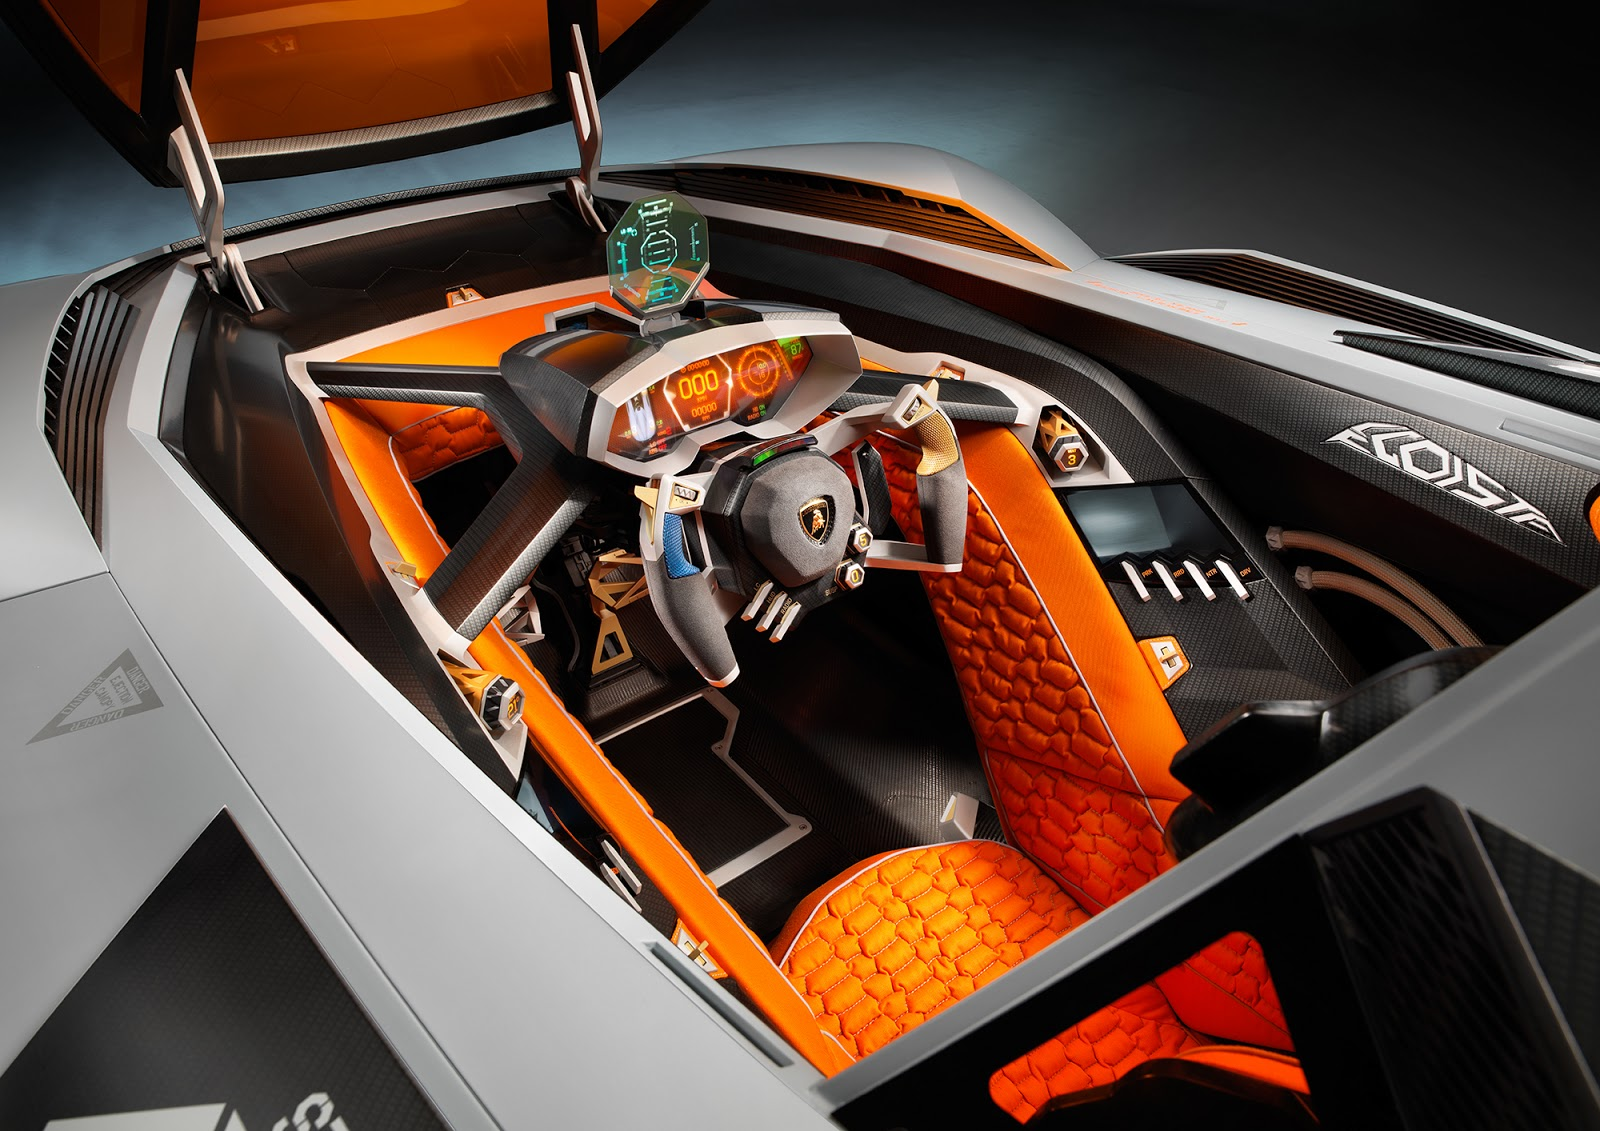 The Cockpitu0027s Interior Is Extremely Rational, Its Functionality Taken To  The Extreme. There Is A Racing Seat With A Four Point Seatbelt, ...